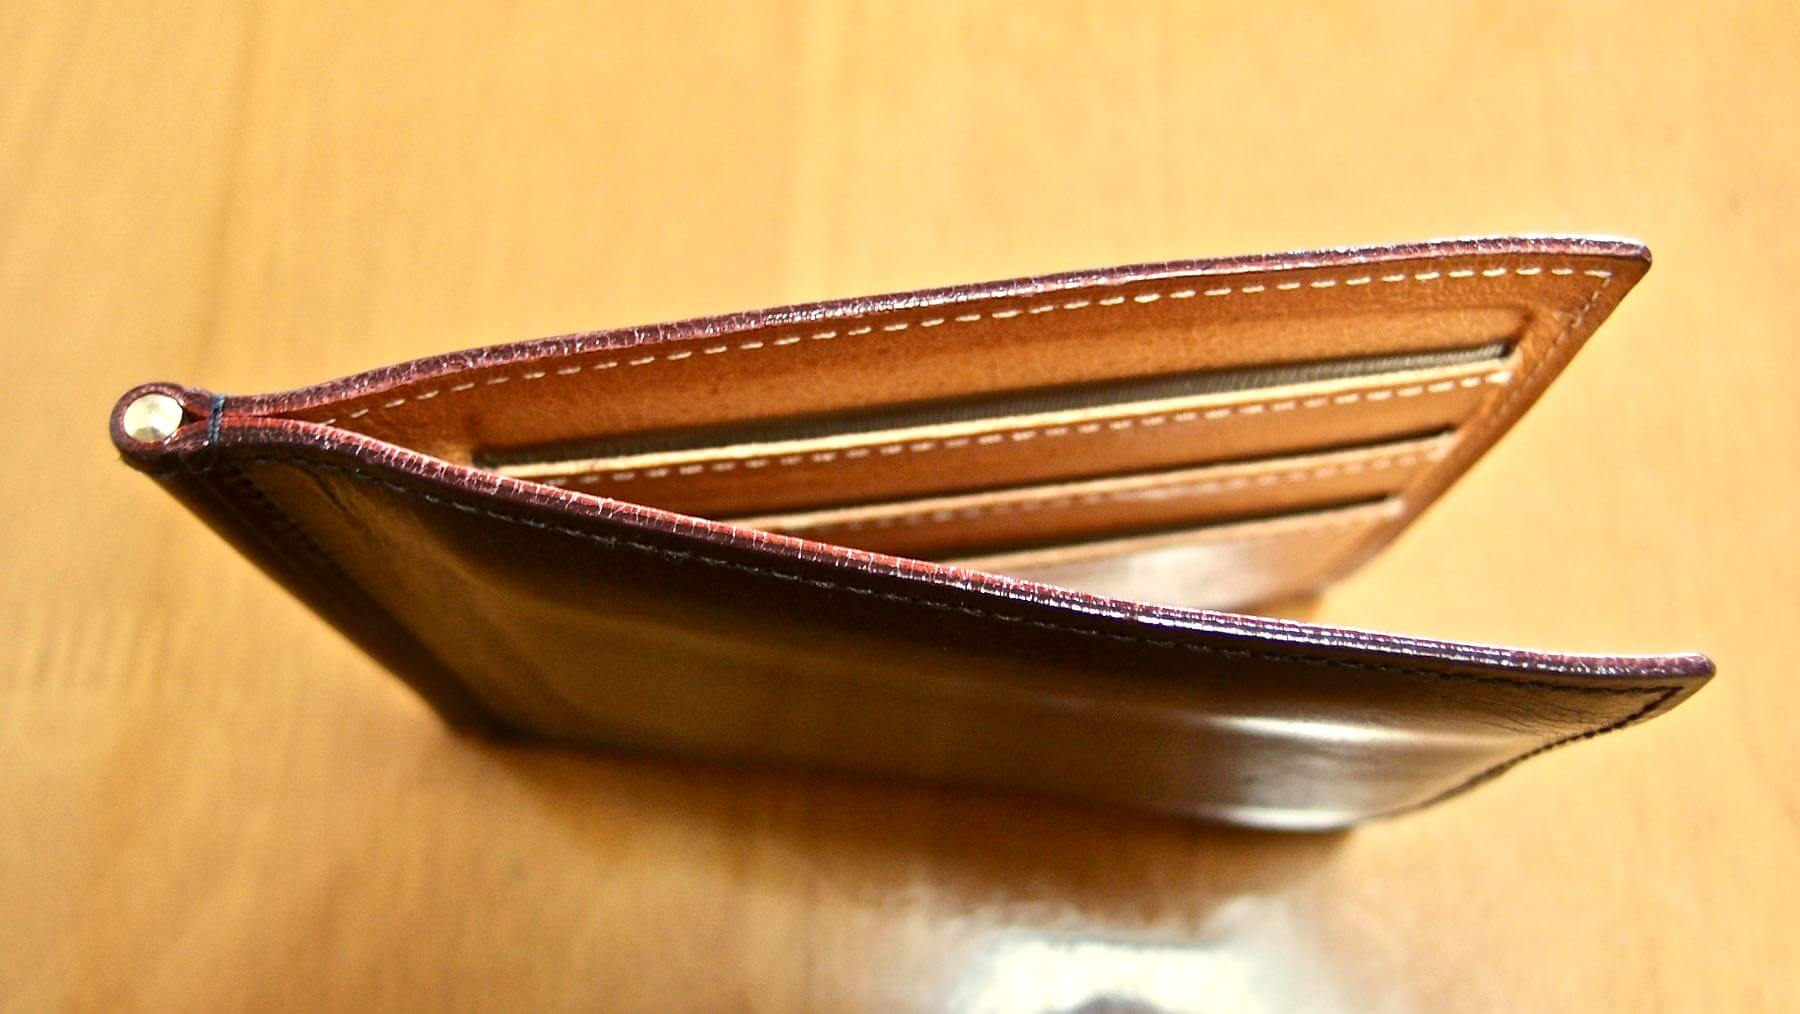 17 GANZO THIN BRIDLE Money clip One year after aging